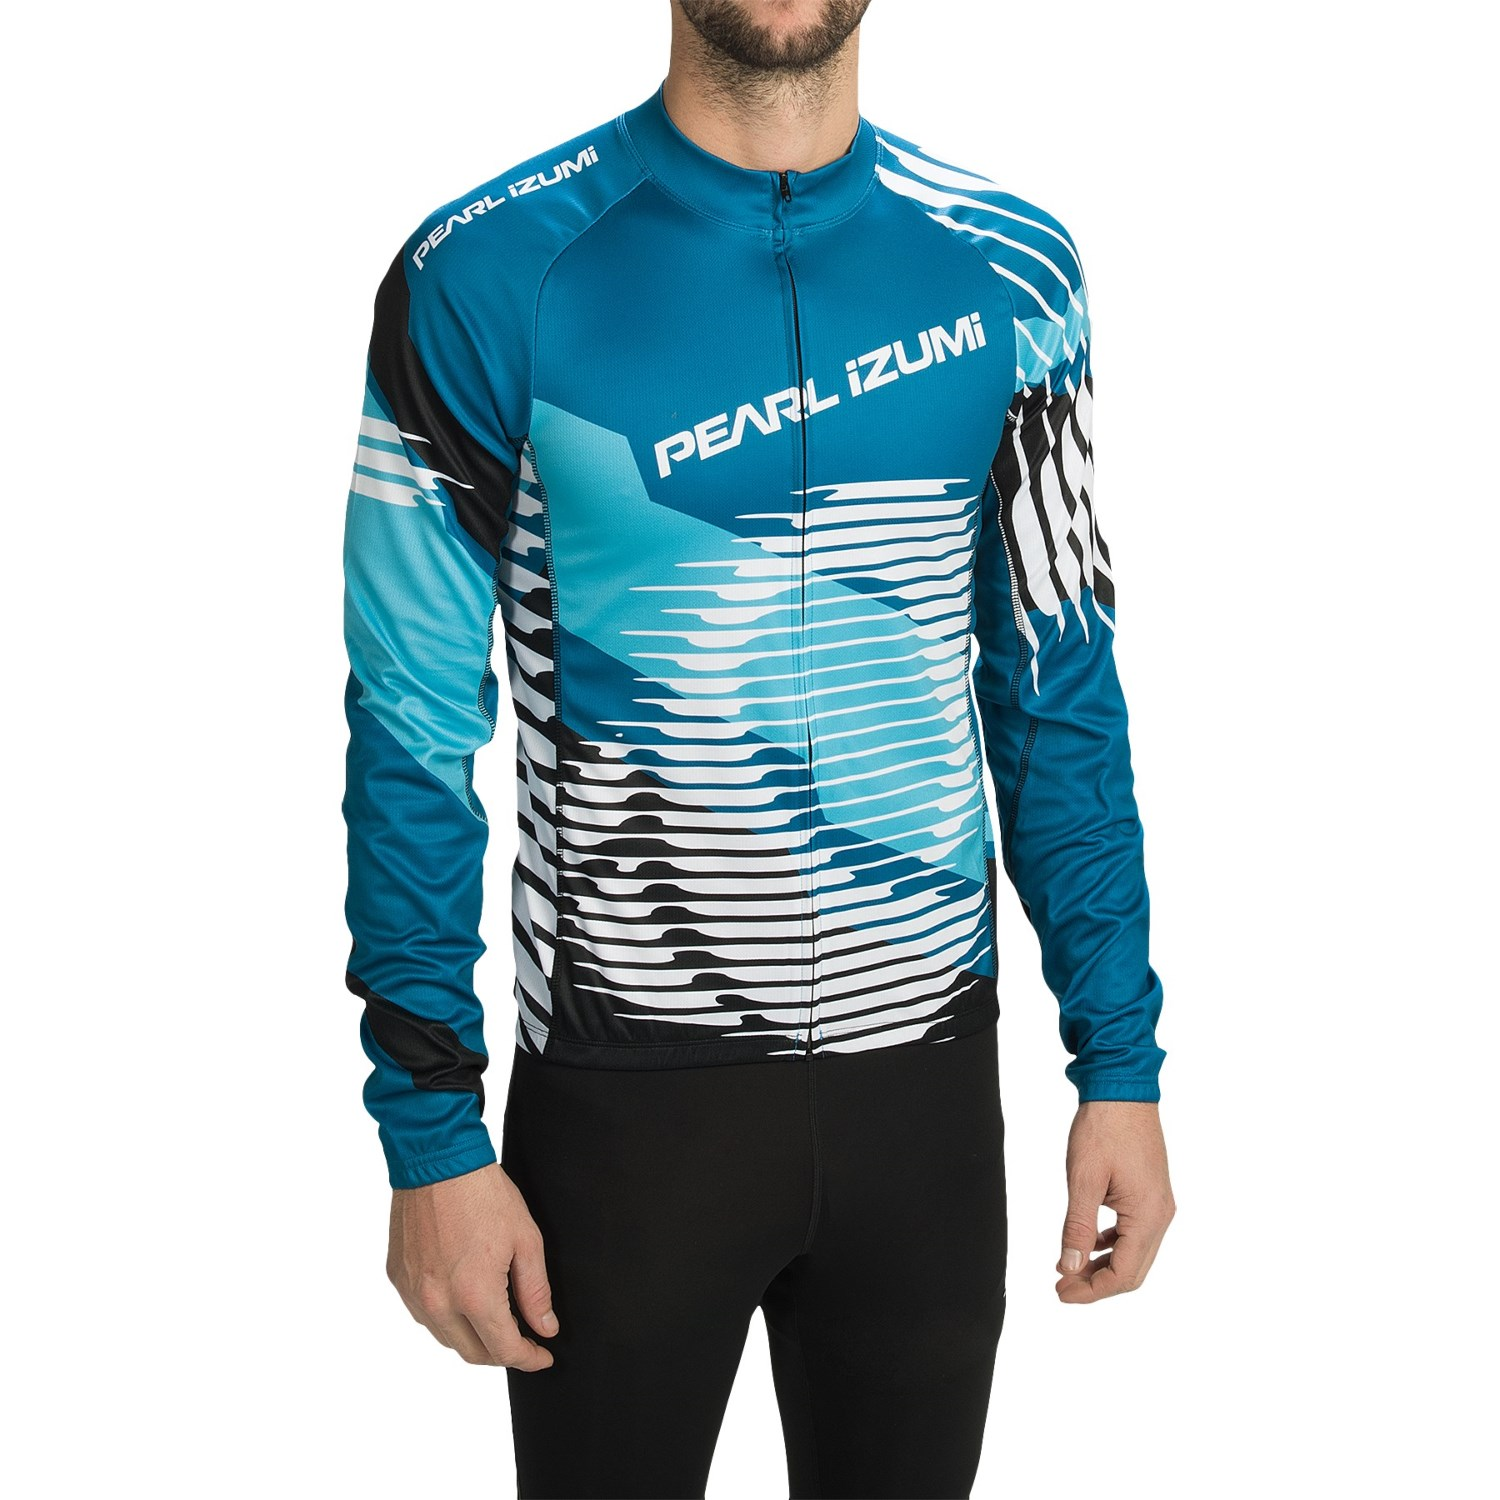 Pearl izumi elite thermal ltd cycling jersey for men for Pearl izumi cycling shirt